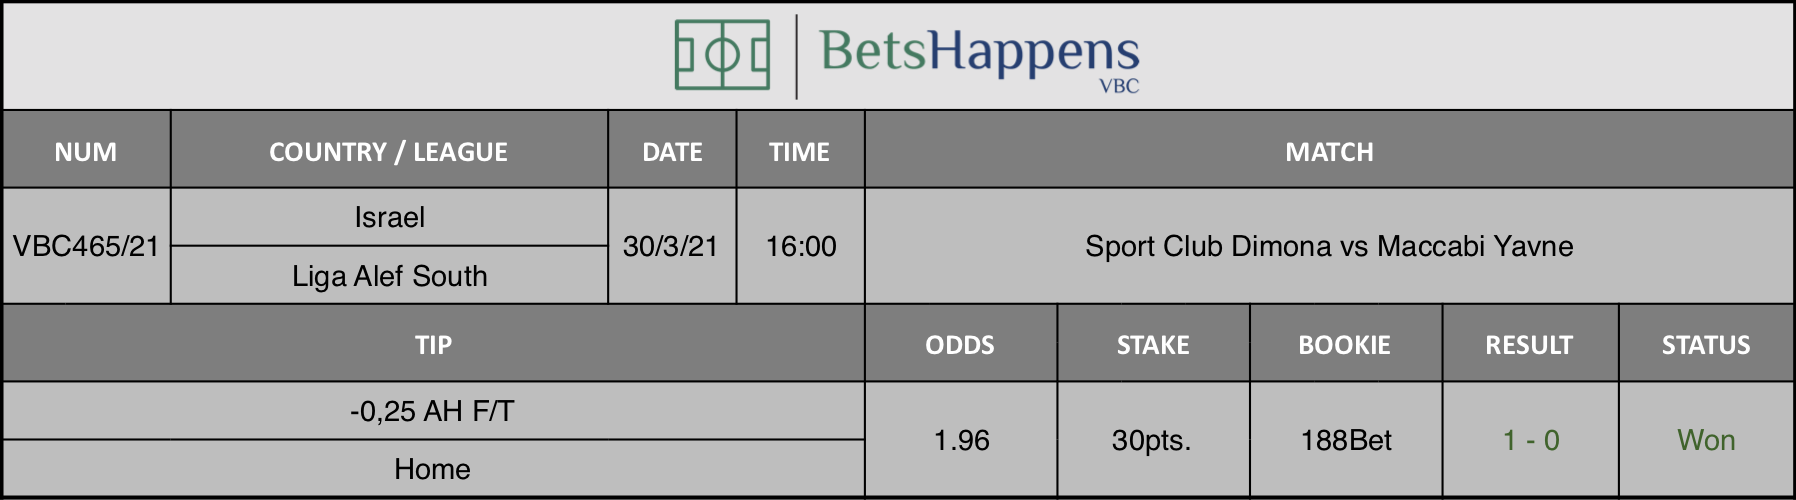 Results of our tip for the Sport Club Dimona vs Maccabi Yavne match where -0,25 AH F/T Home is recommended.